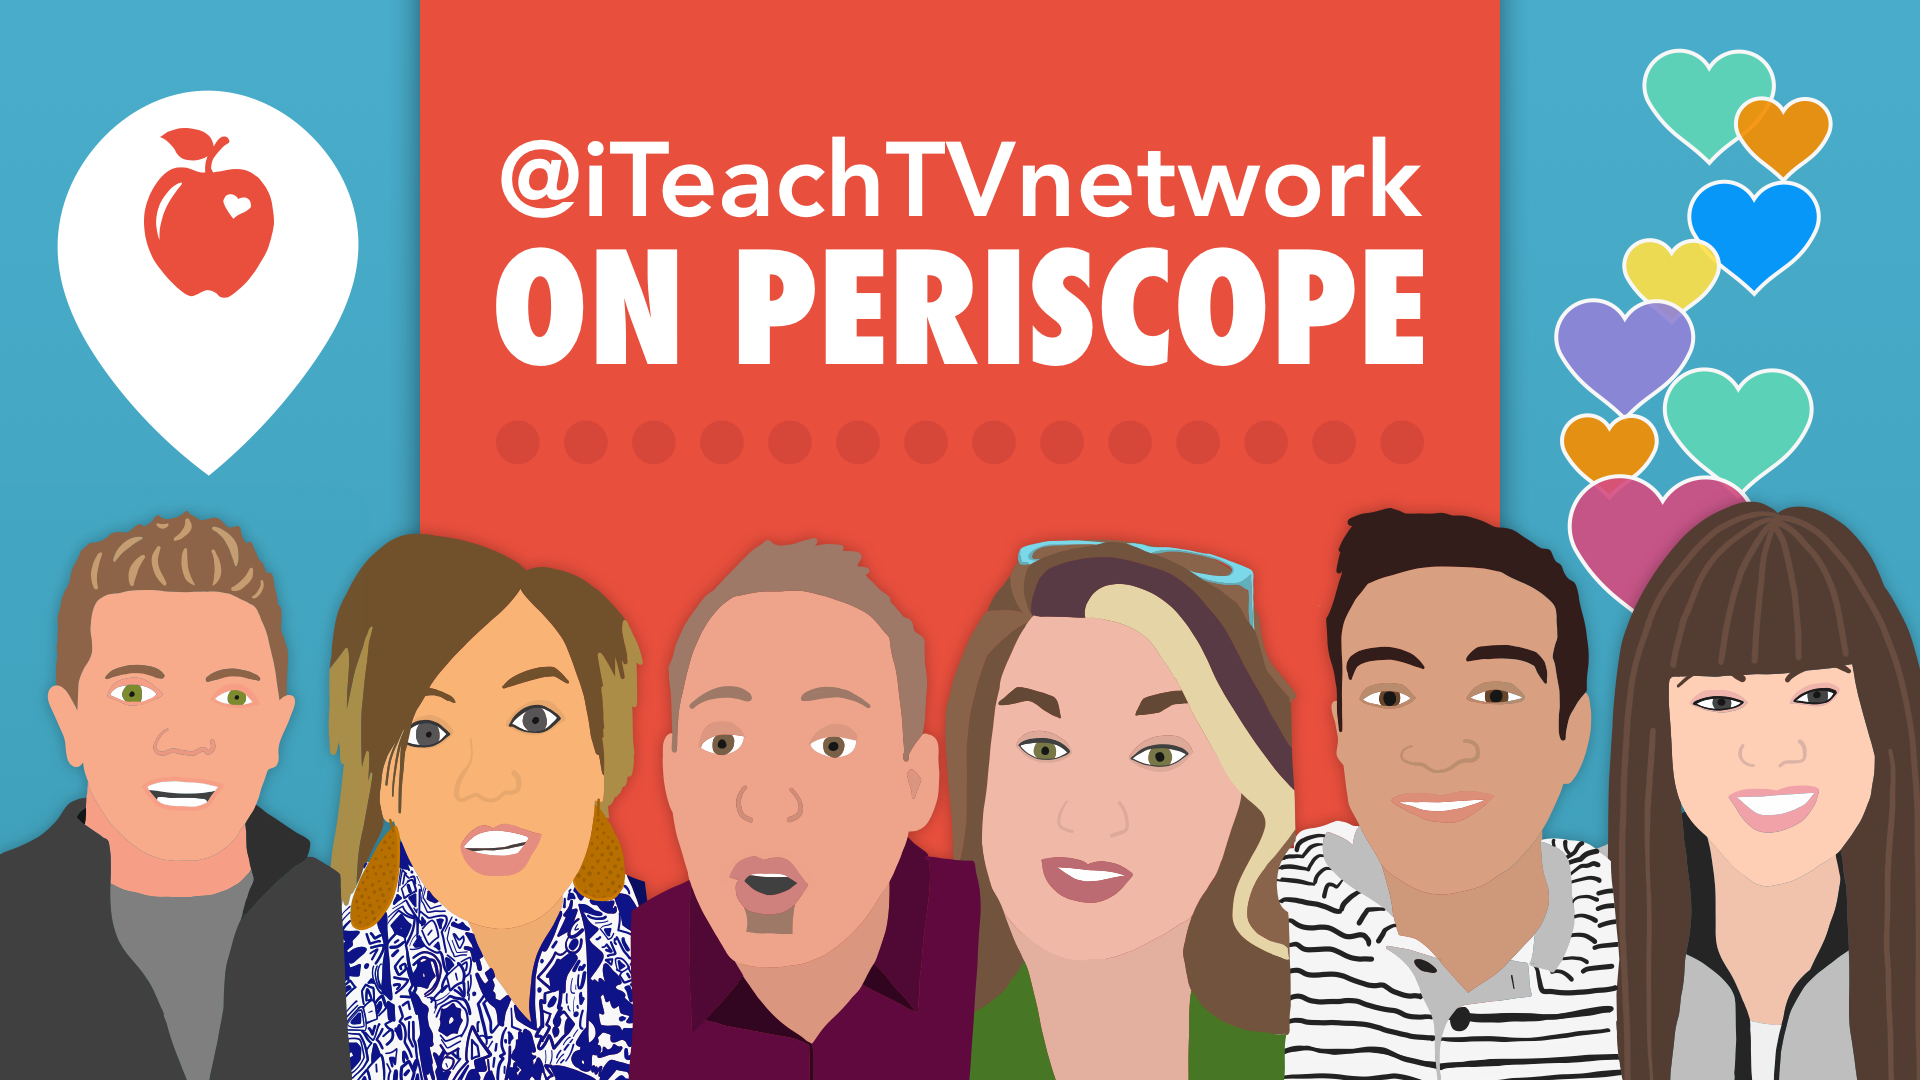 @iTeachTVnetwork on Periscope